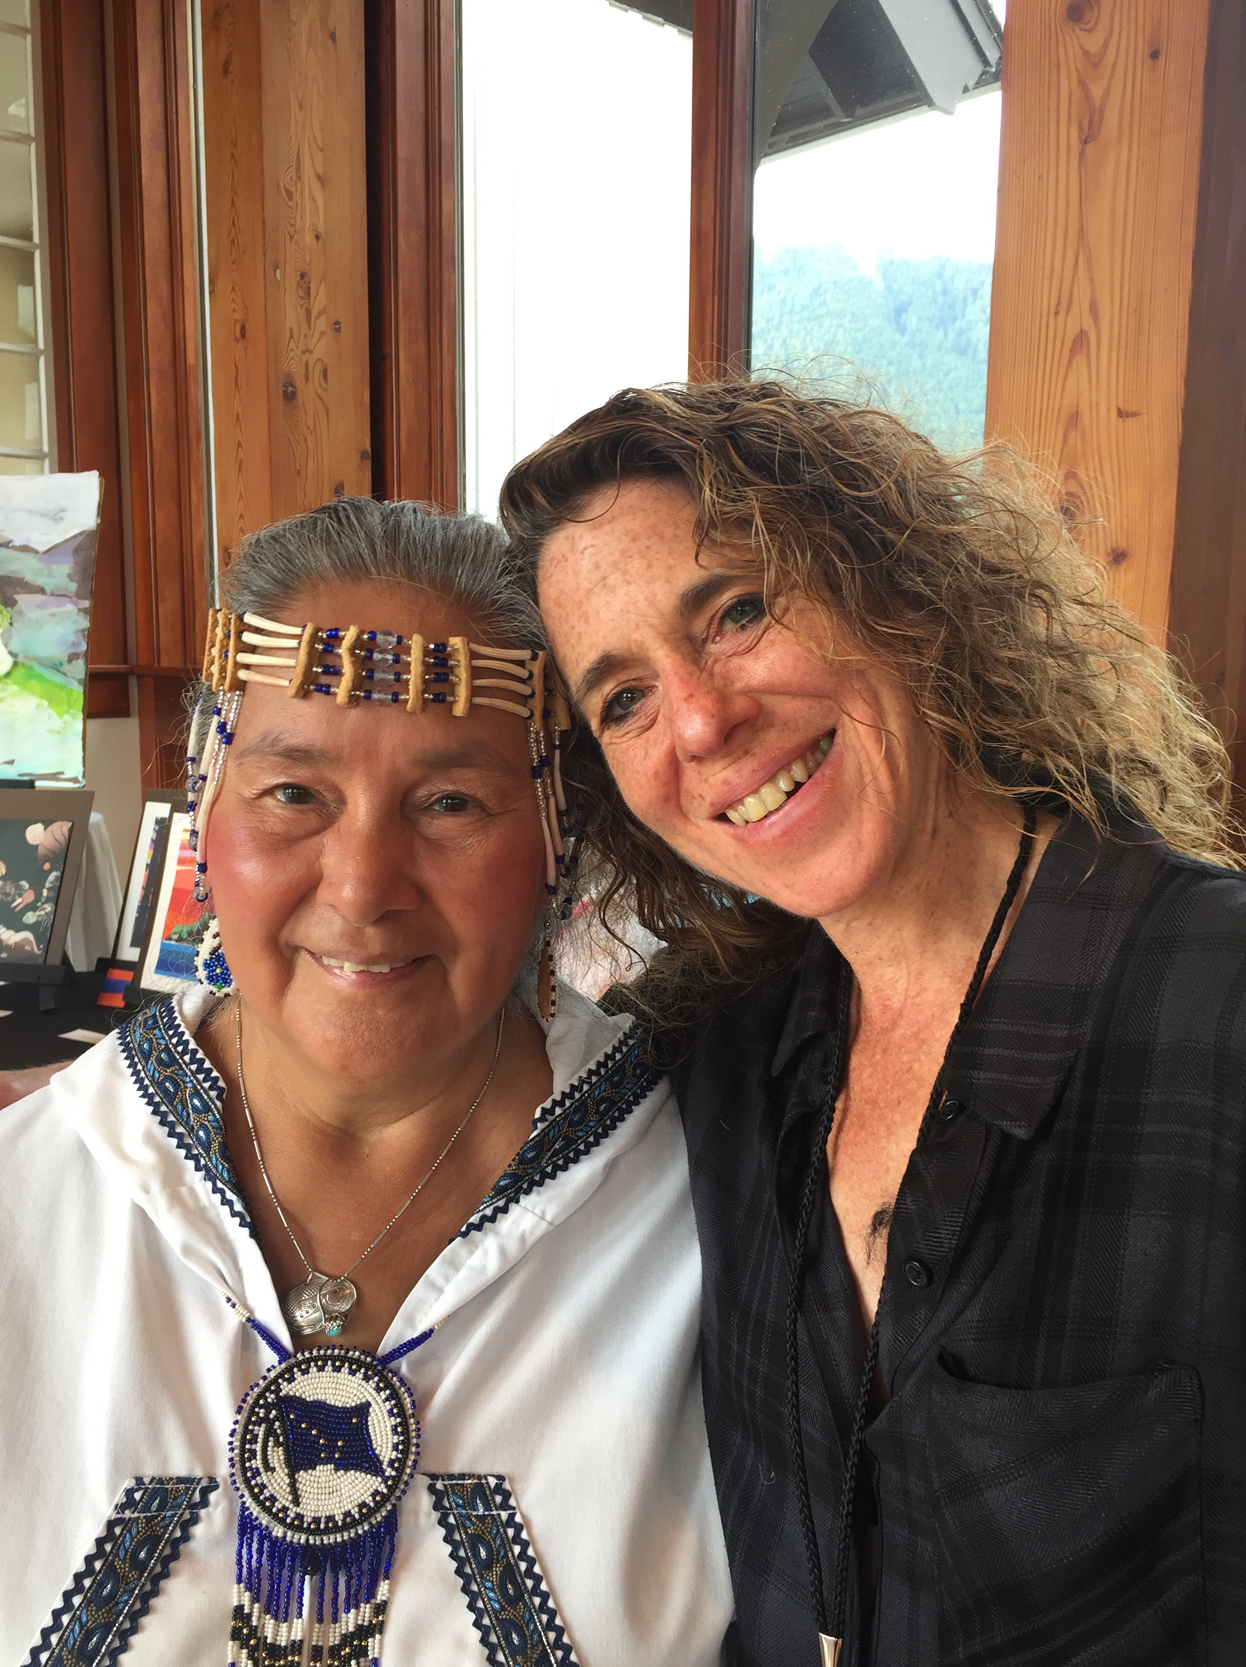 I had the honor of meeting fellow instructor, Audrey Armstrong, born in the village of Galena, Alaska, Audrey teaches the traditional Alaskan art form of fish skin sewing.